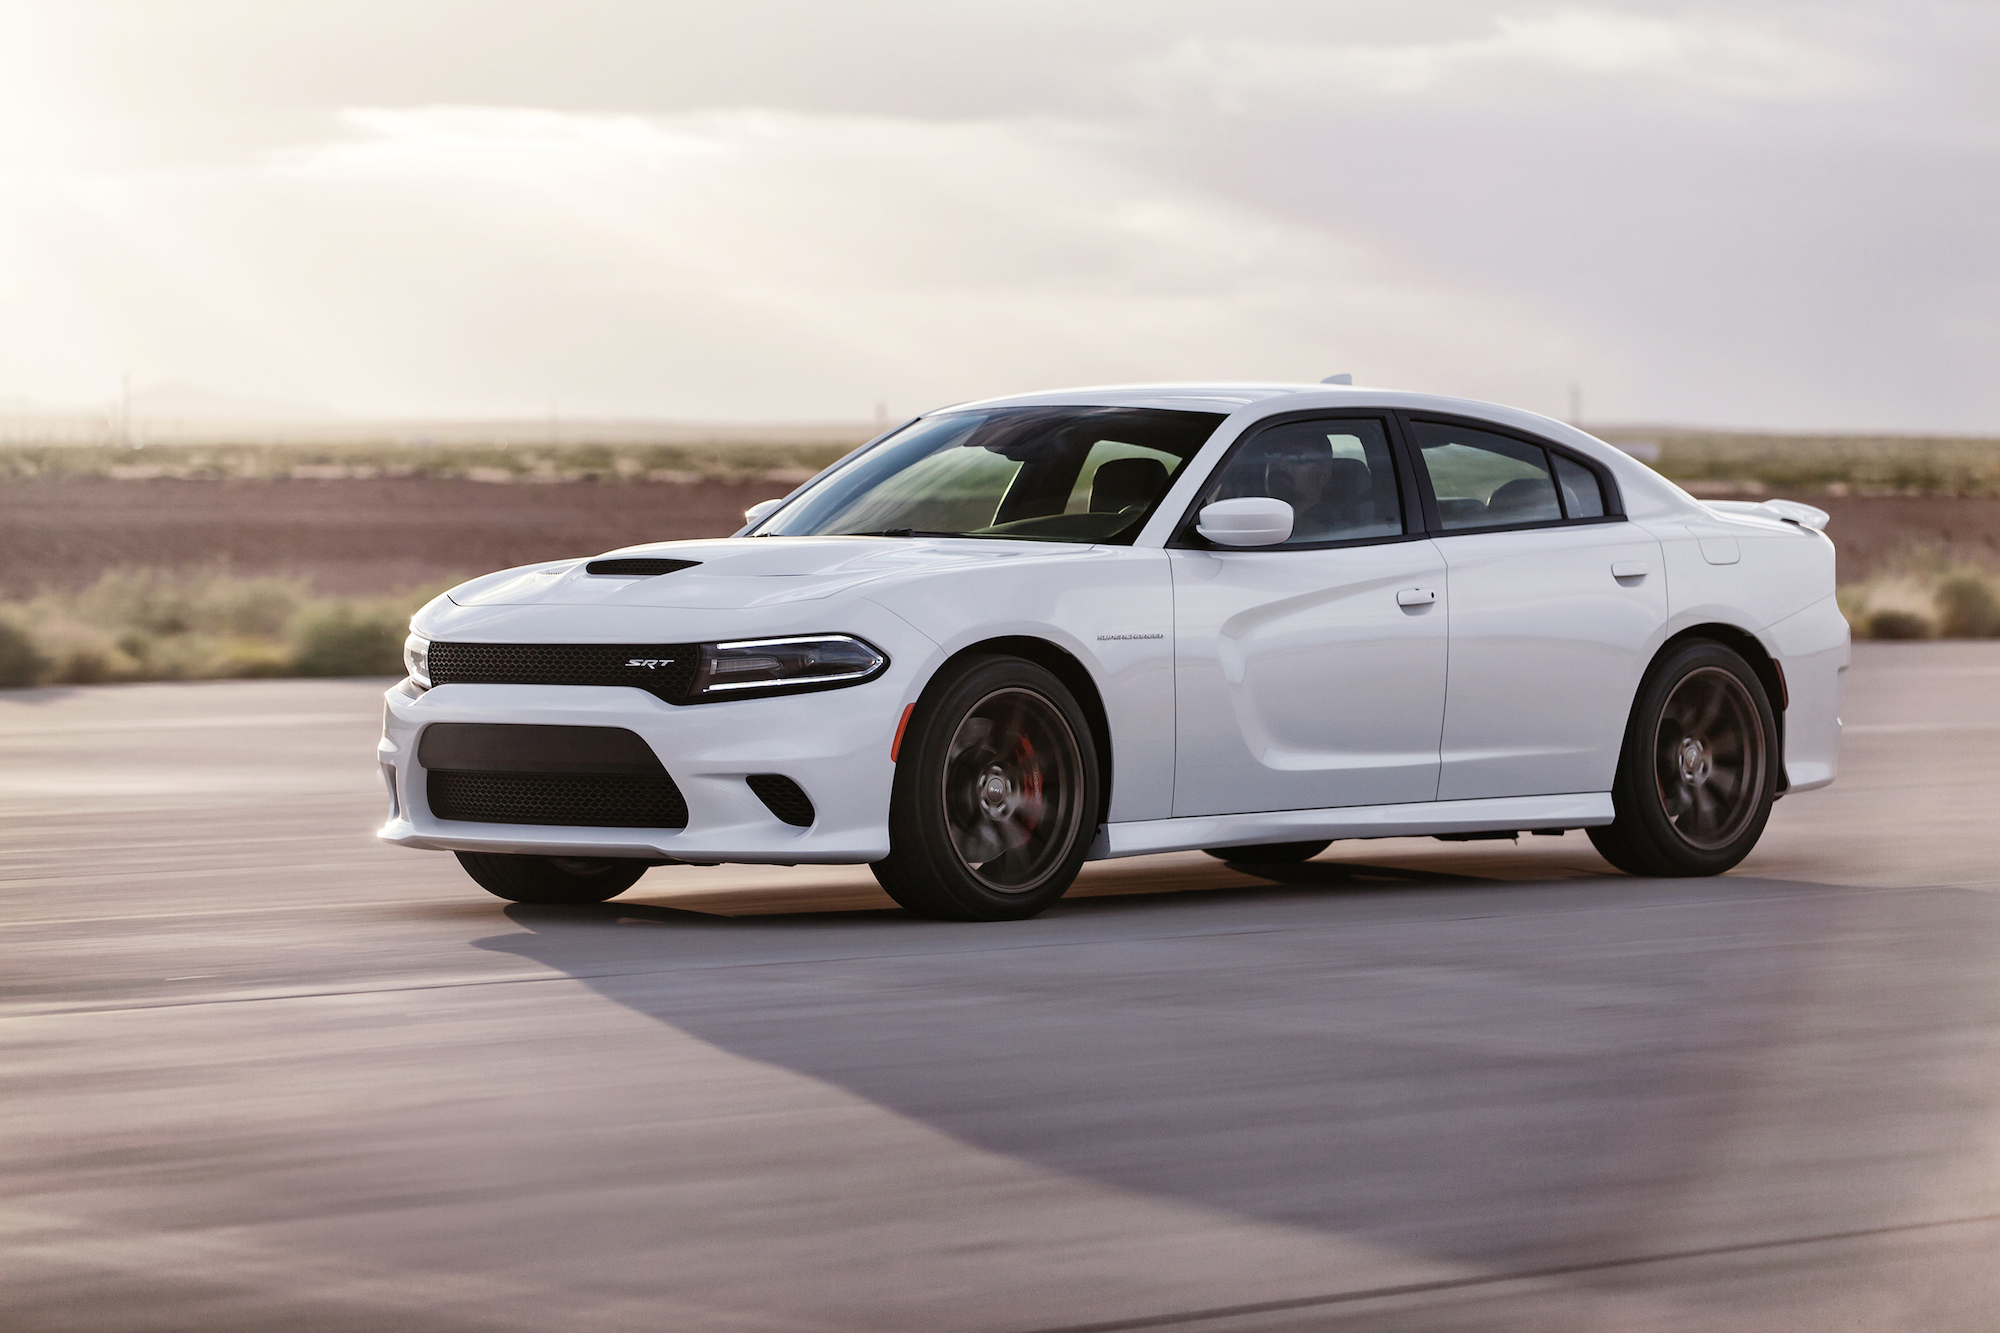 2015 Dodge Charger #15